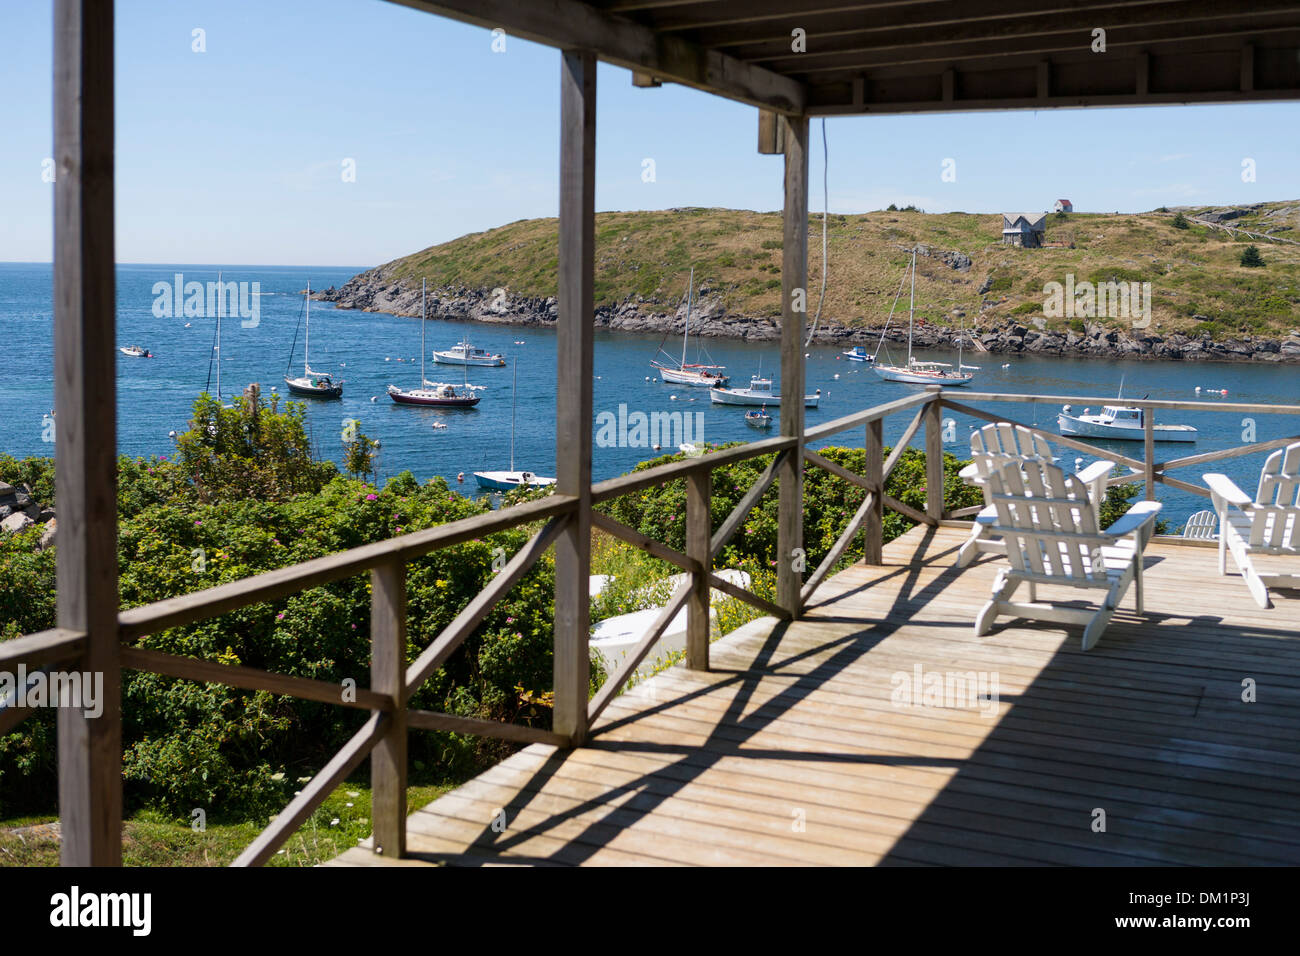 A view of Monhegan Island's harbor from the porch of a small hotel there. Monhegan is an offshore island belonging to Maine, USA - Stock Image